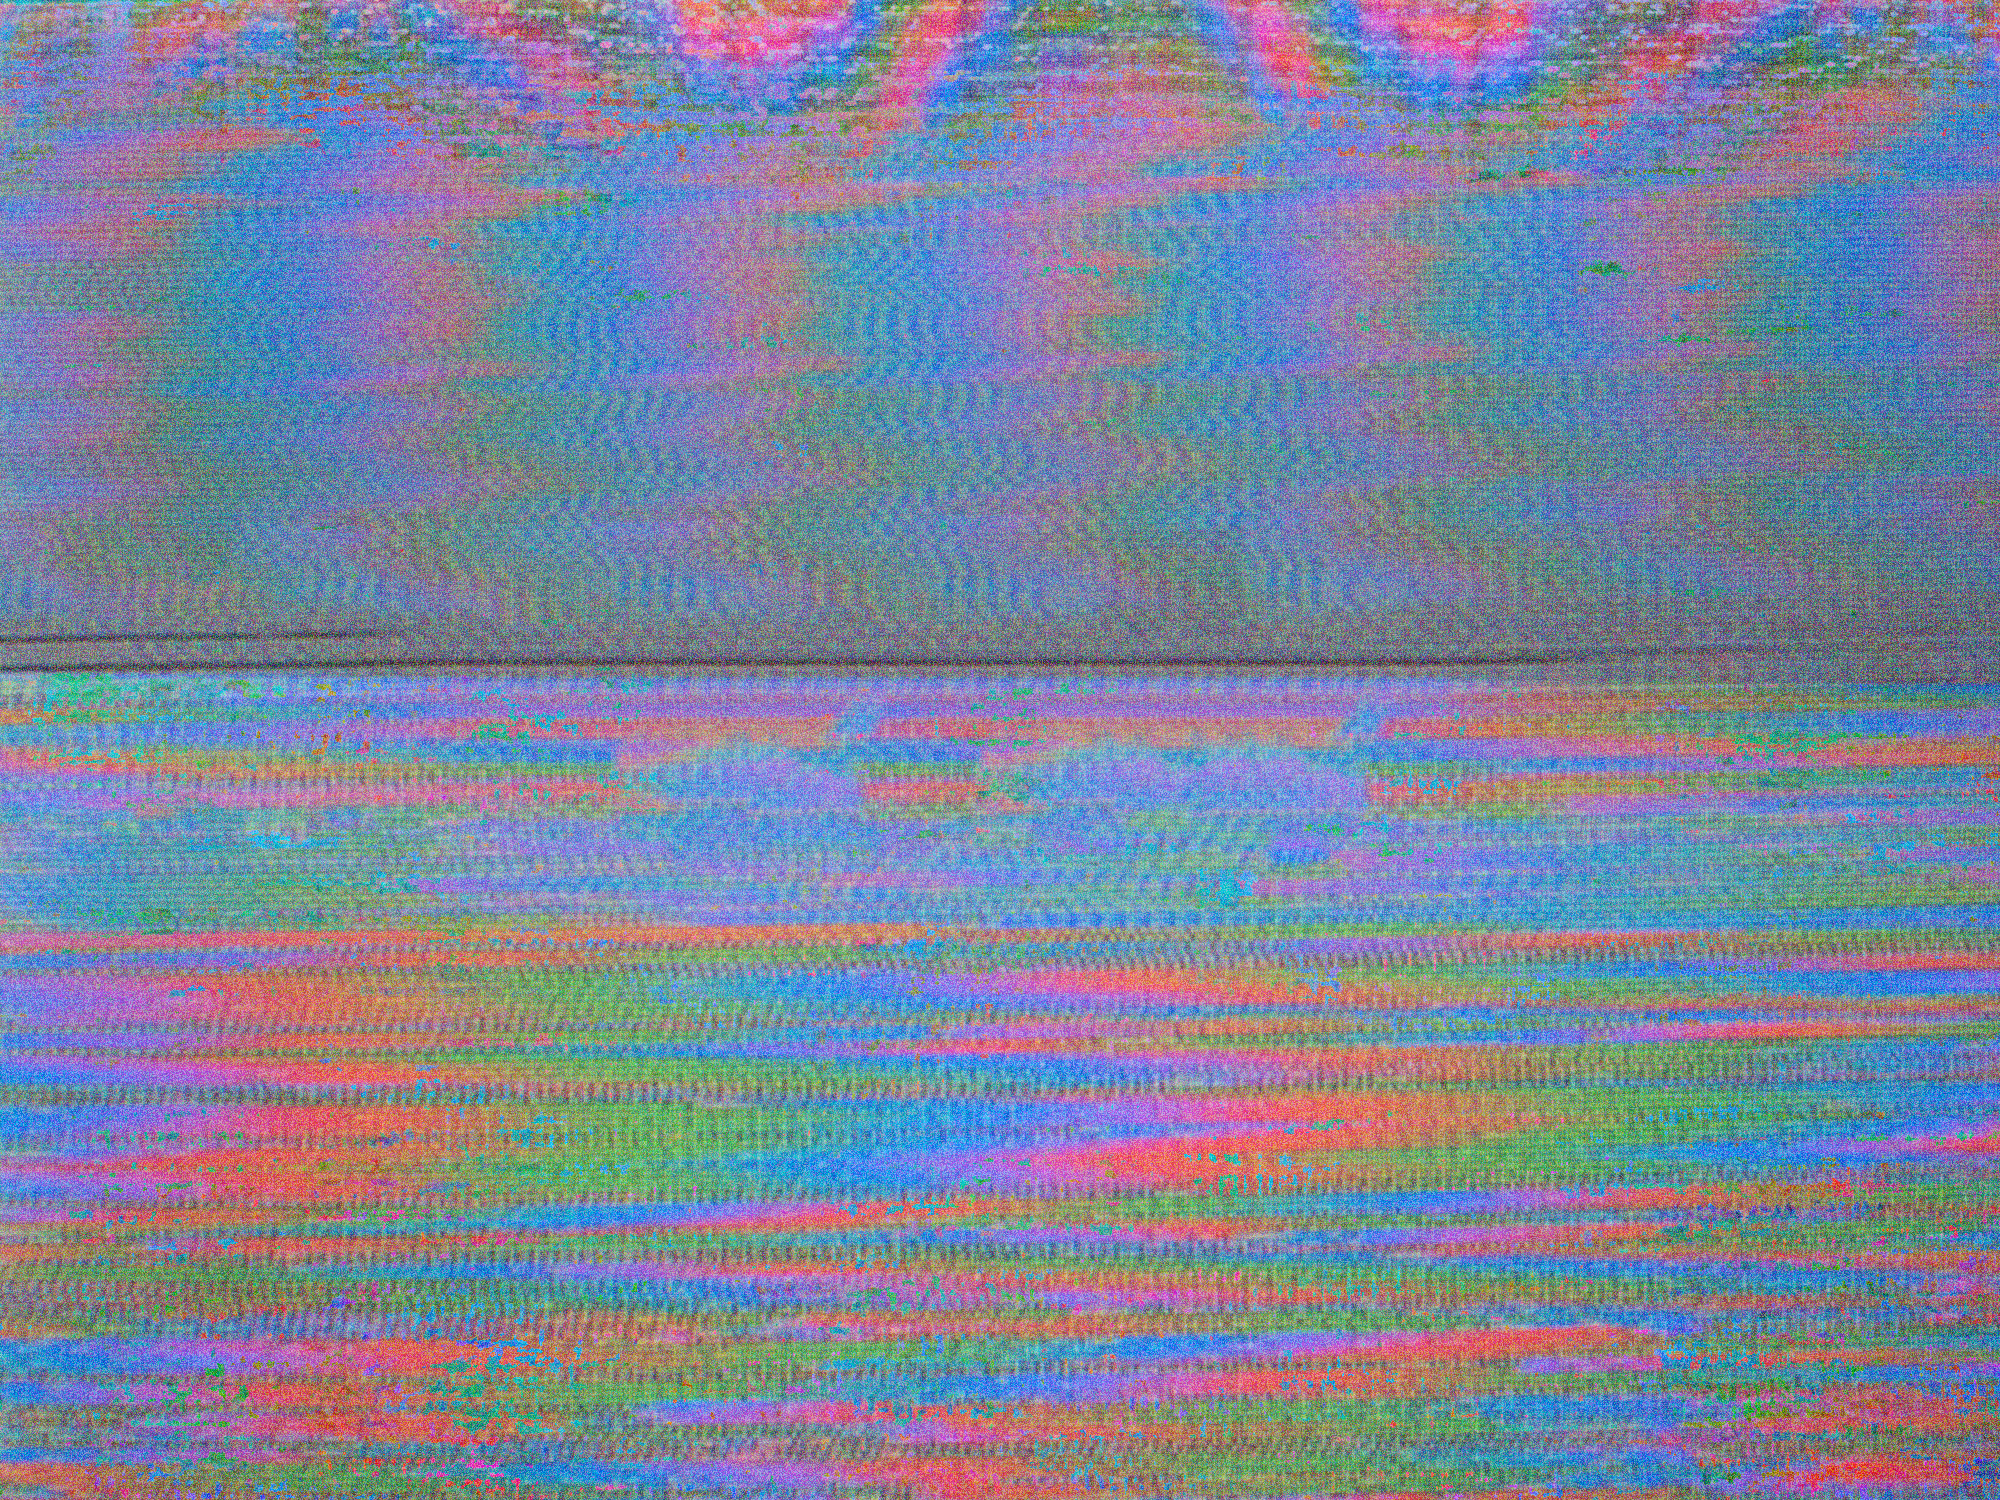 VHS noise free textures